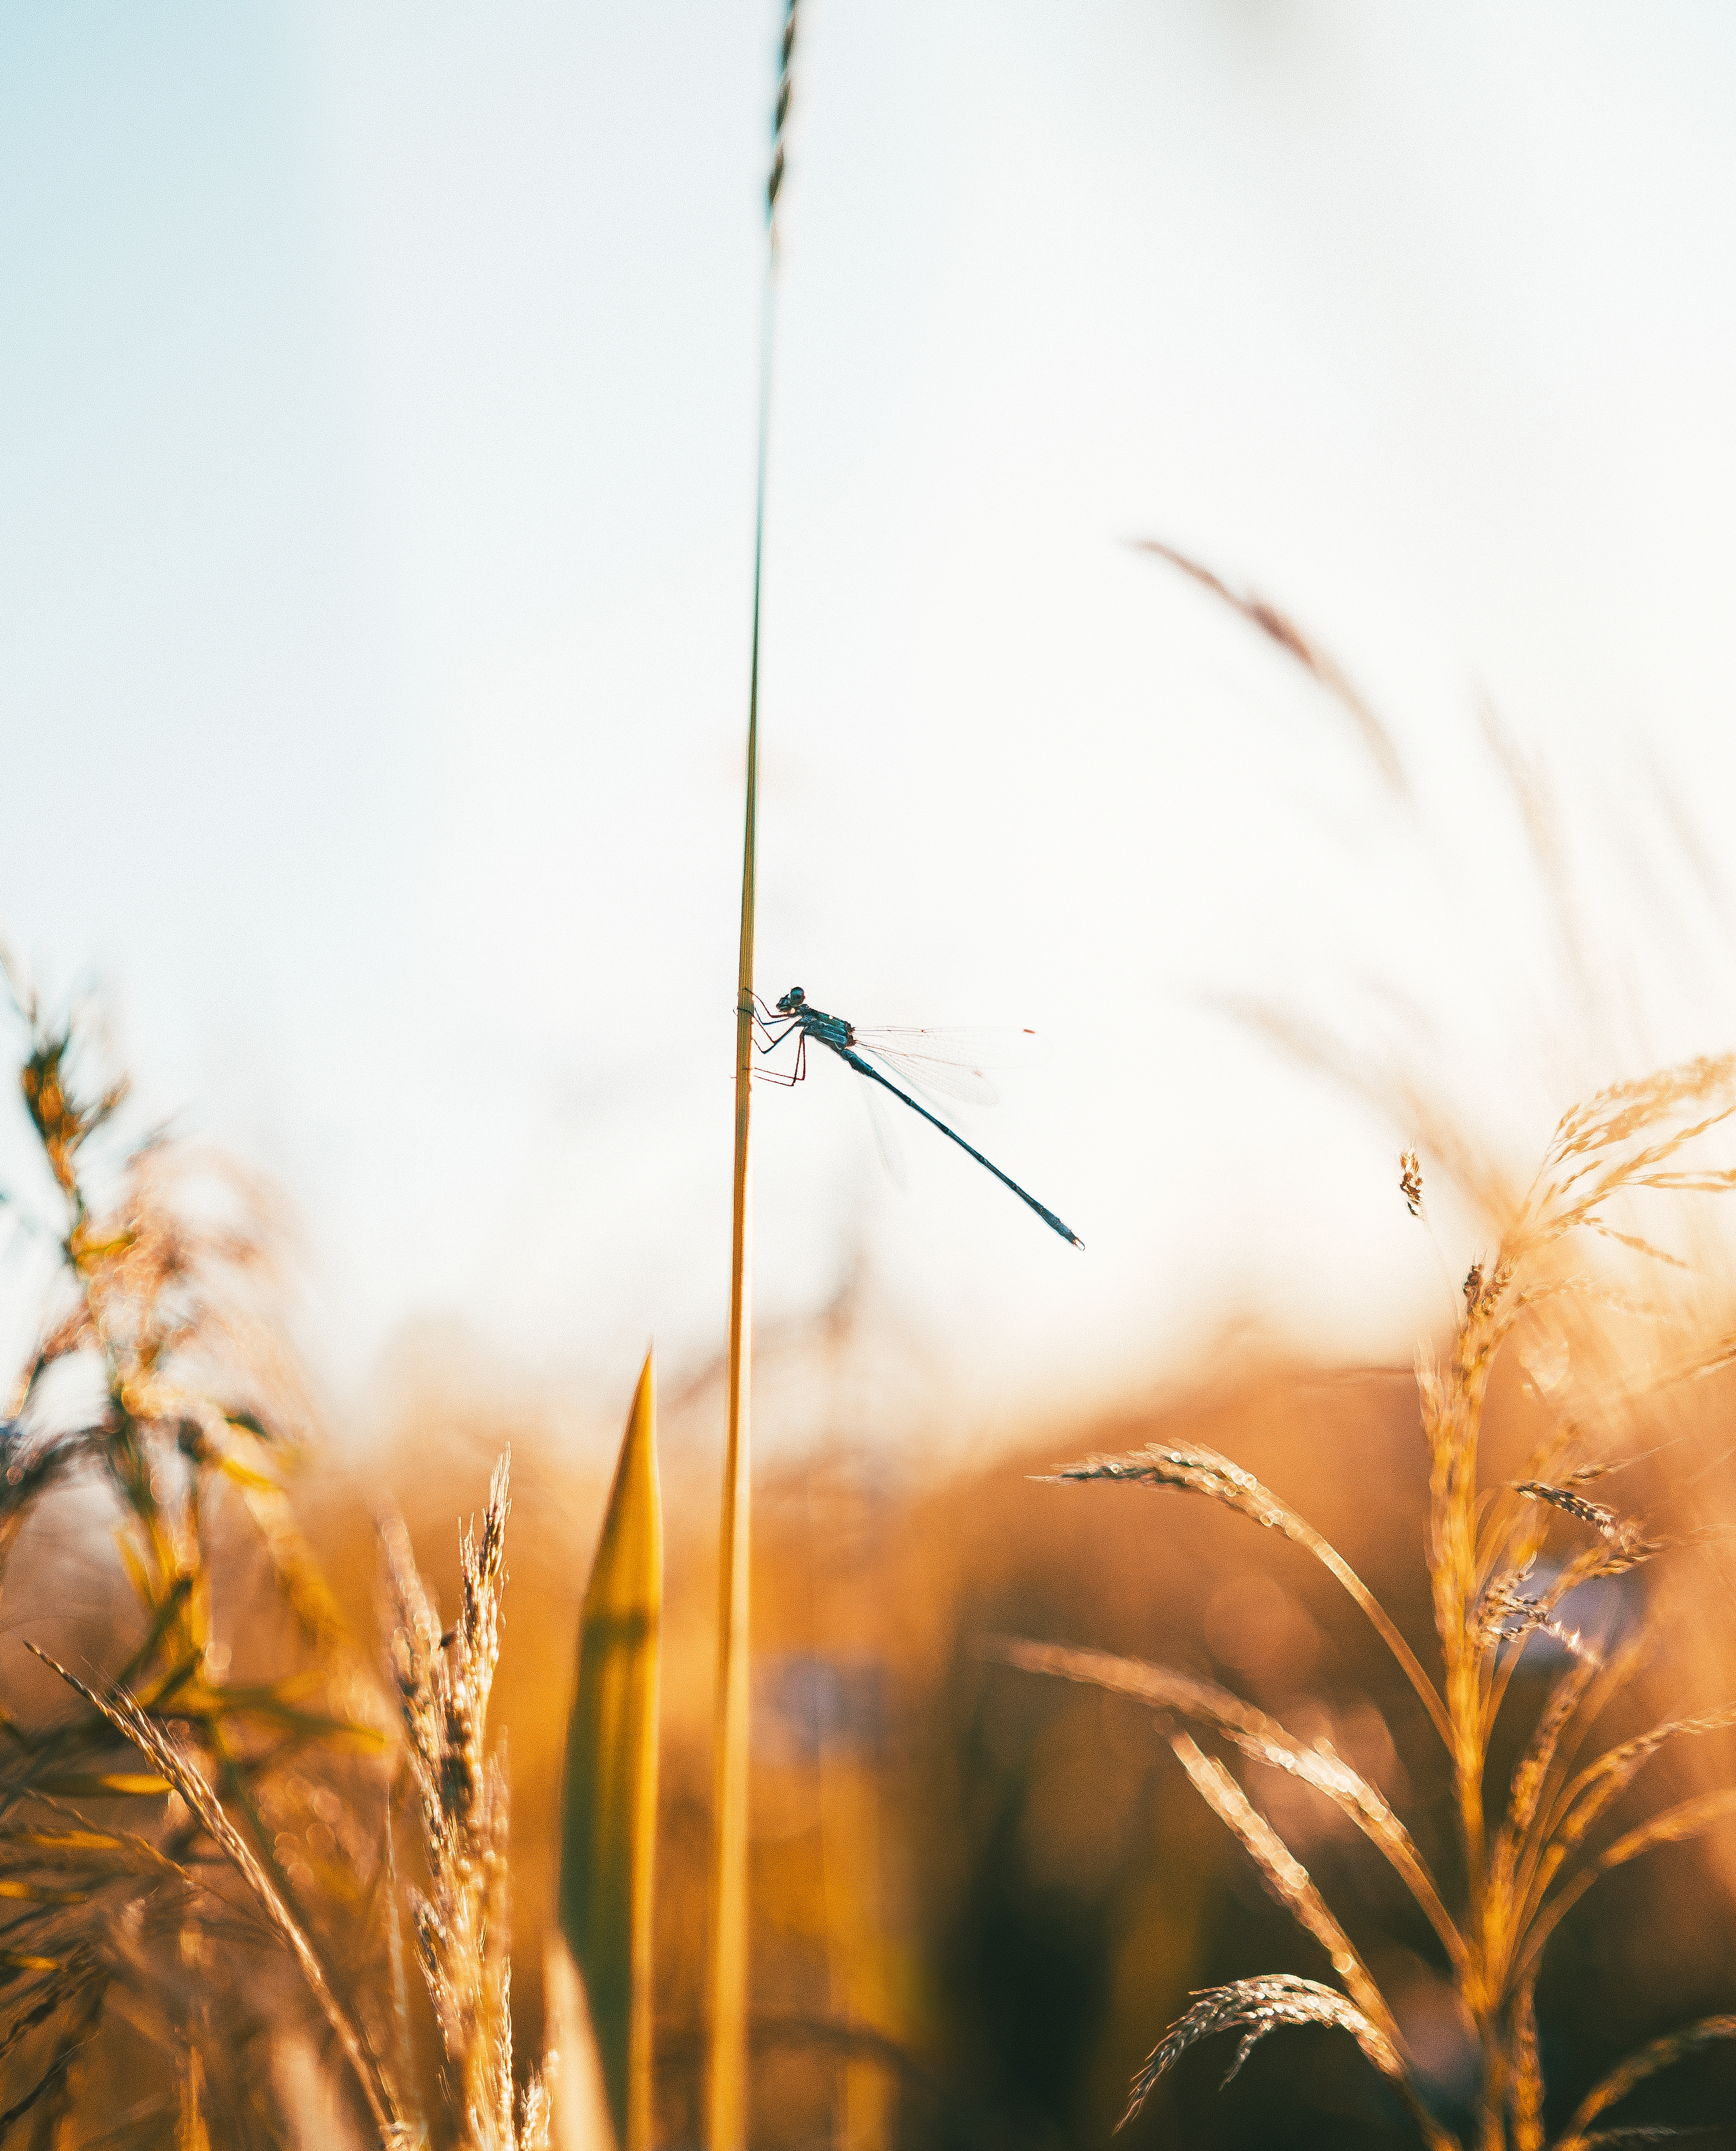 Selective Focus Photo of Dragonfly Perched on Wheat